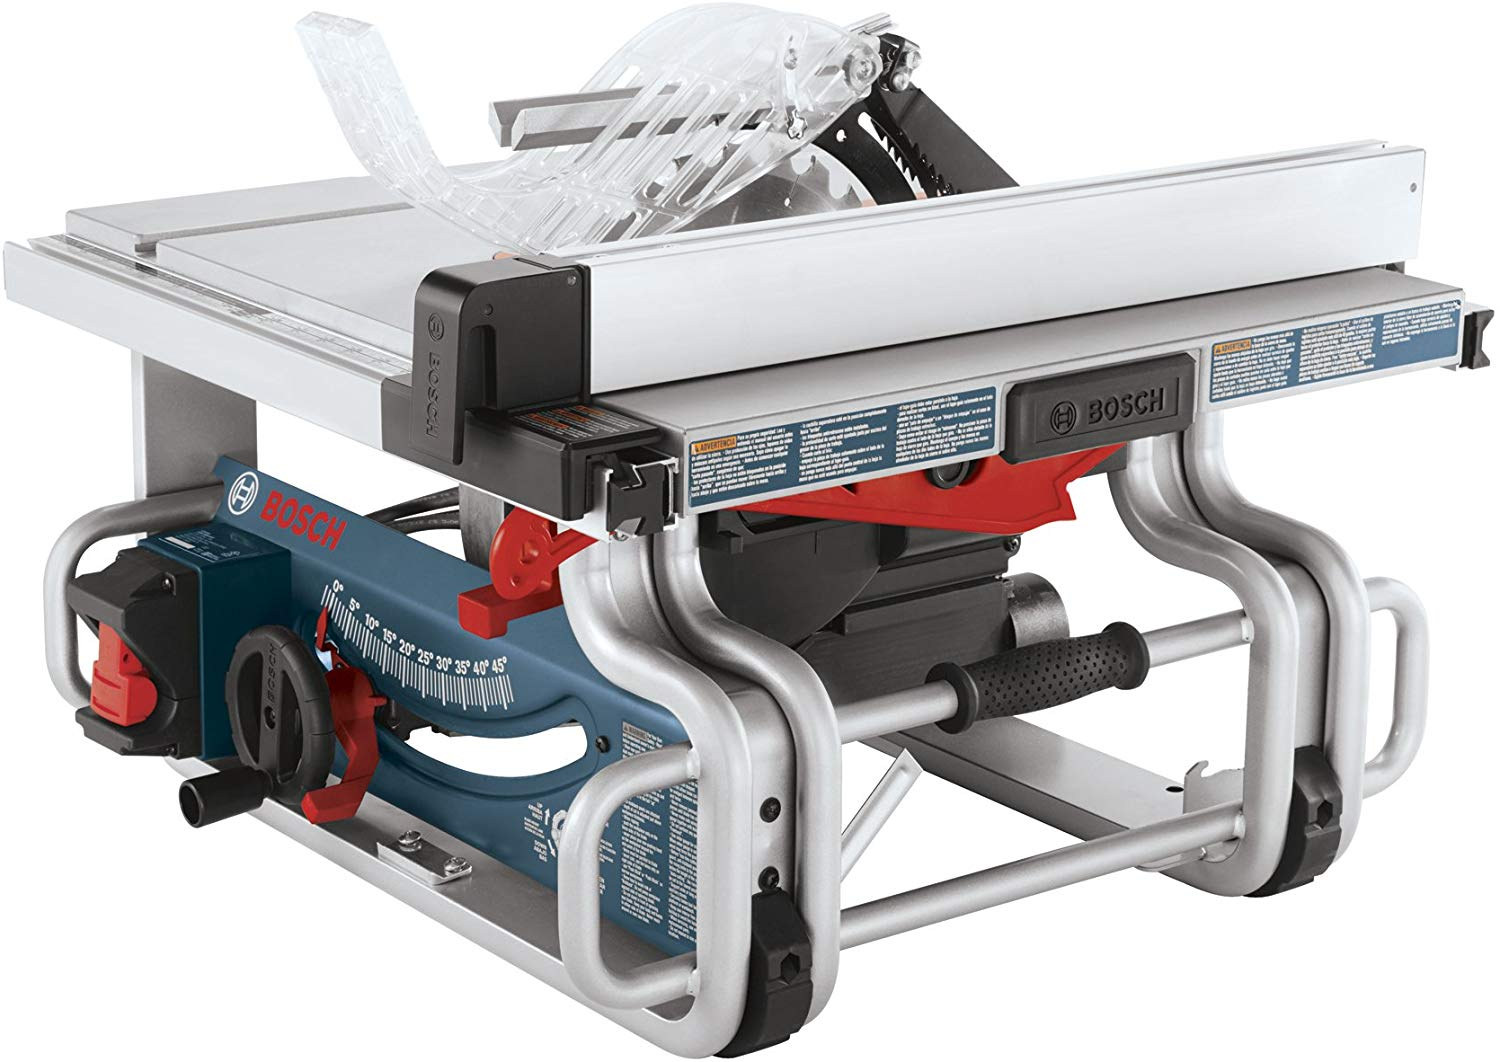 Bosch Portable 10 Inch Jobsite One-Handed Table Saw